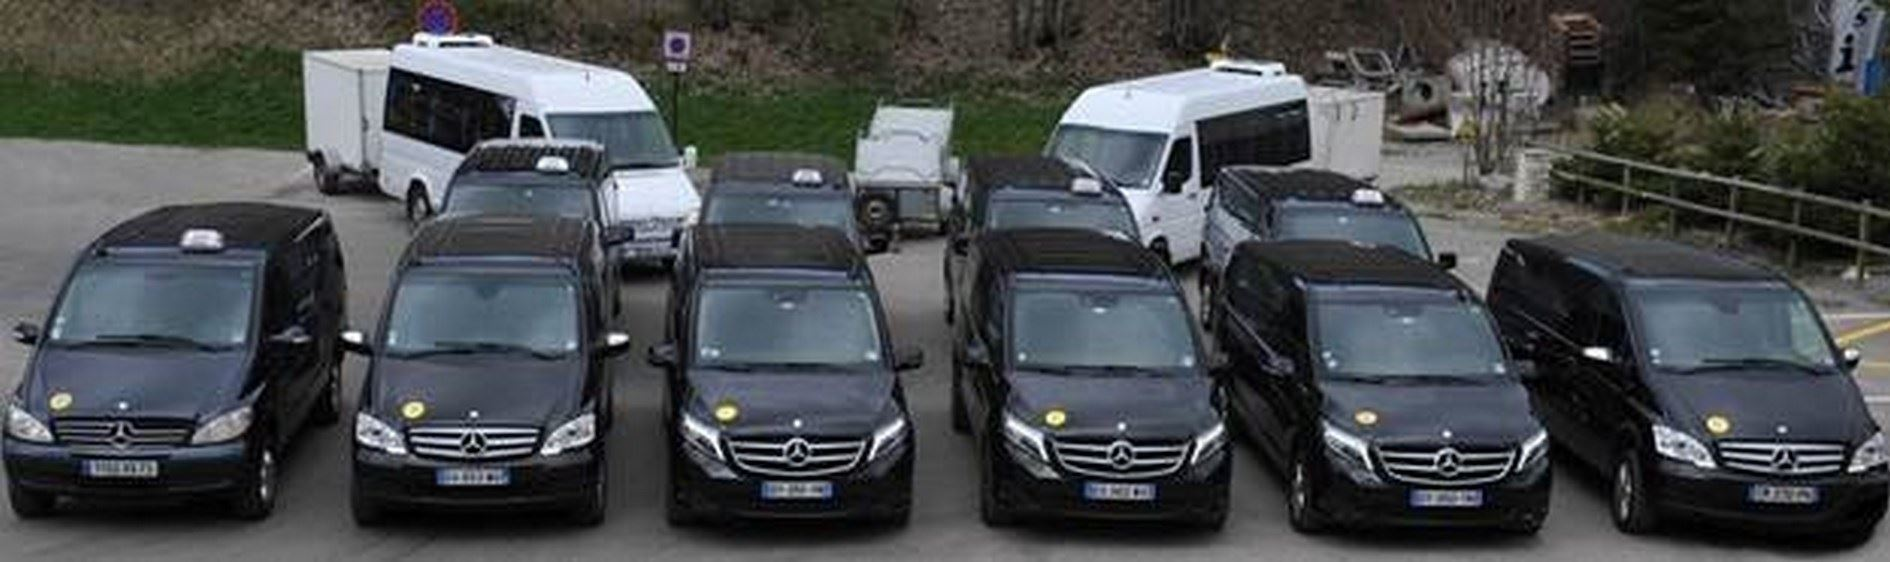 PRIVATE TRANSFER FROM CHAMBERY TRAIN STATION - ALPES TAXIS TRANSPORTS